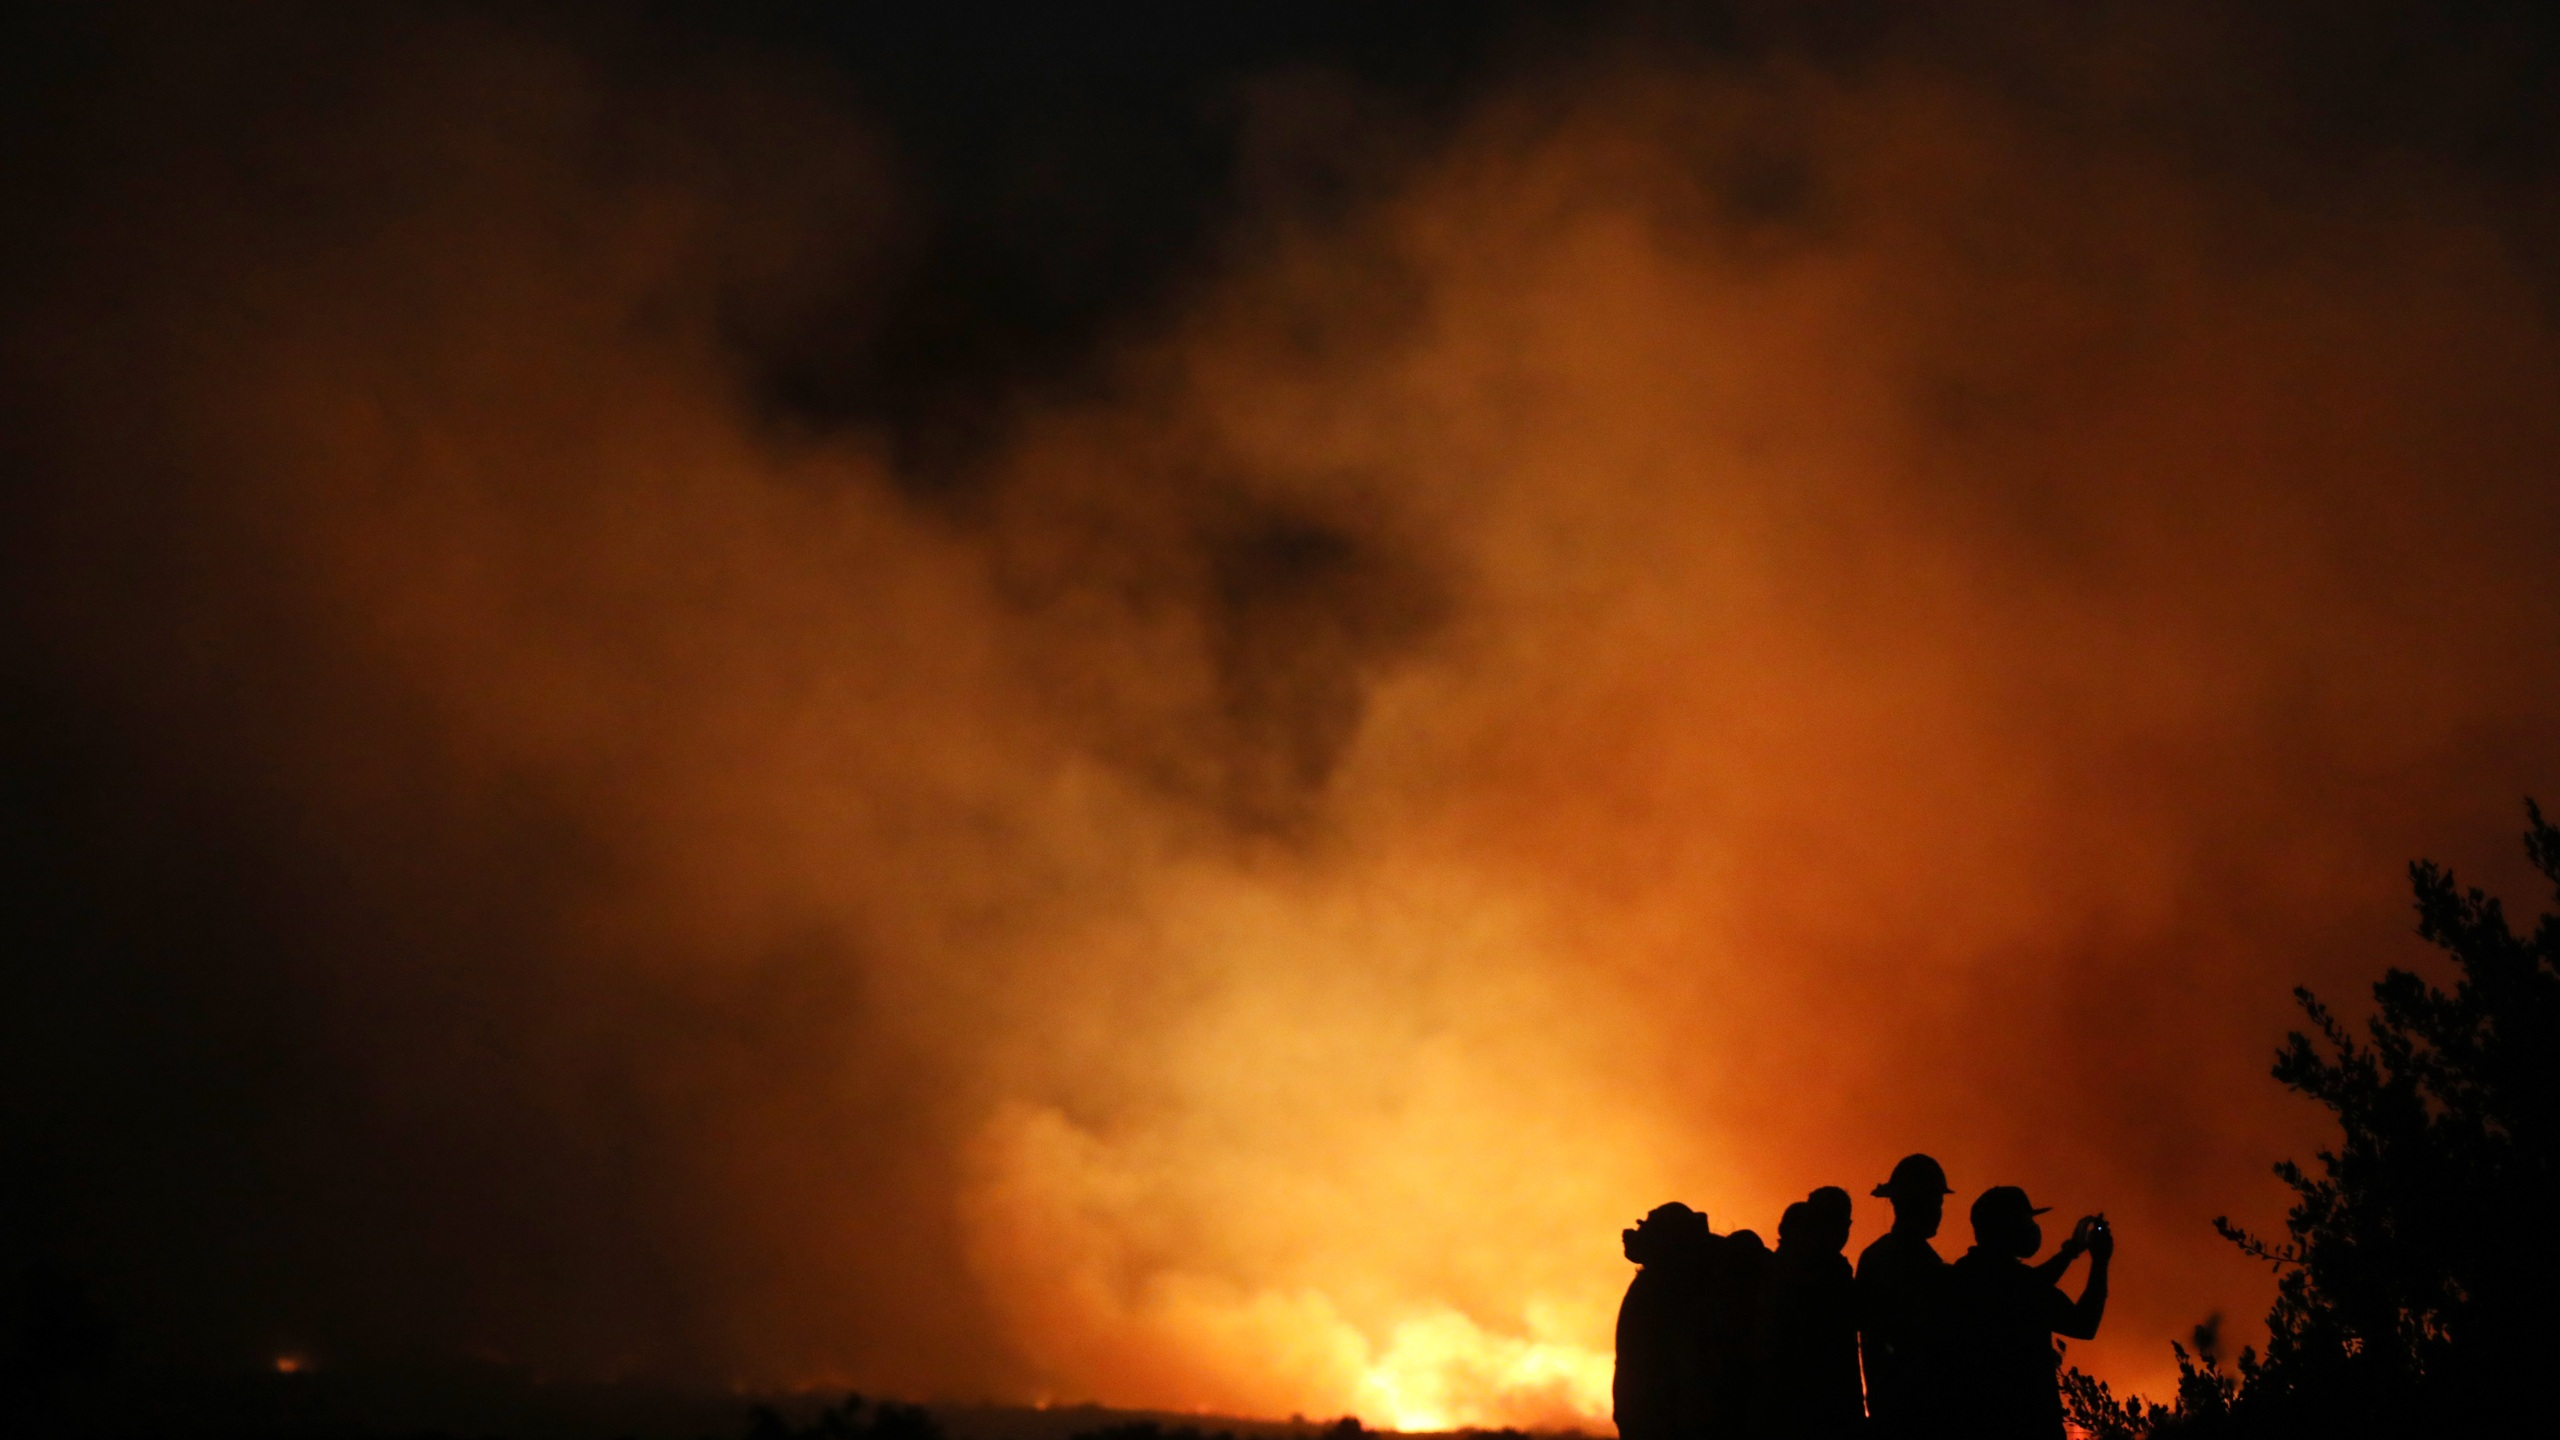 Firefighters and onlookers gather during the Silverado Fire in Orange County on Oct. 26, 2020, in Lake Forest. (Mario Tama/Getty Images)